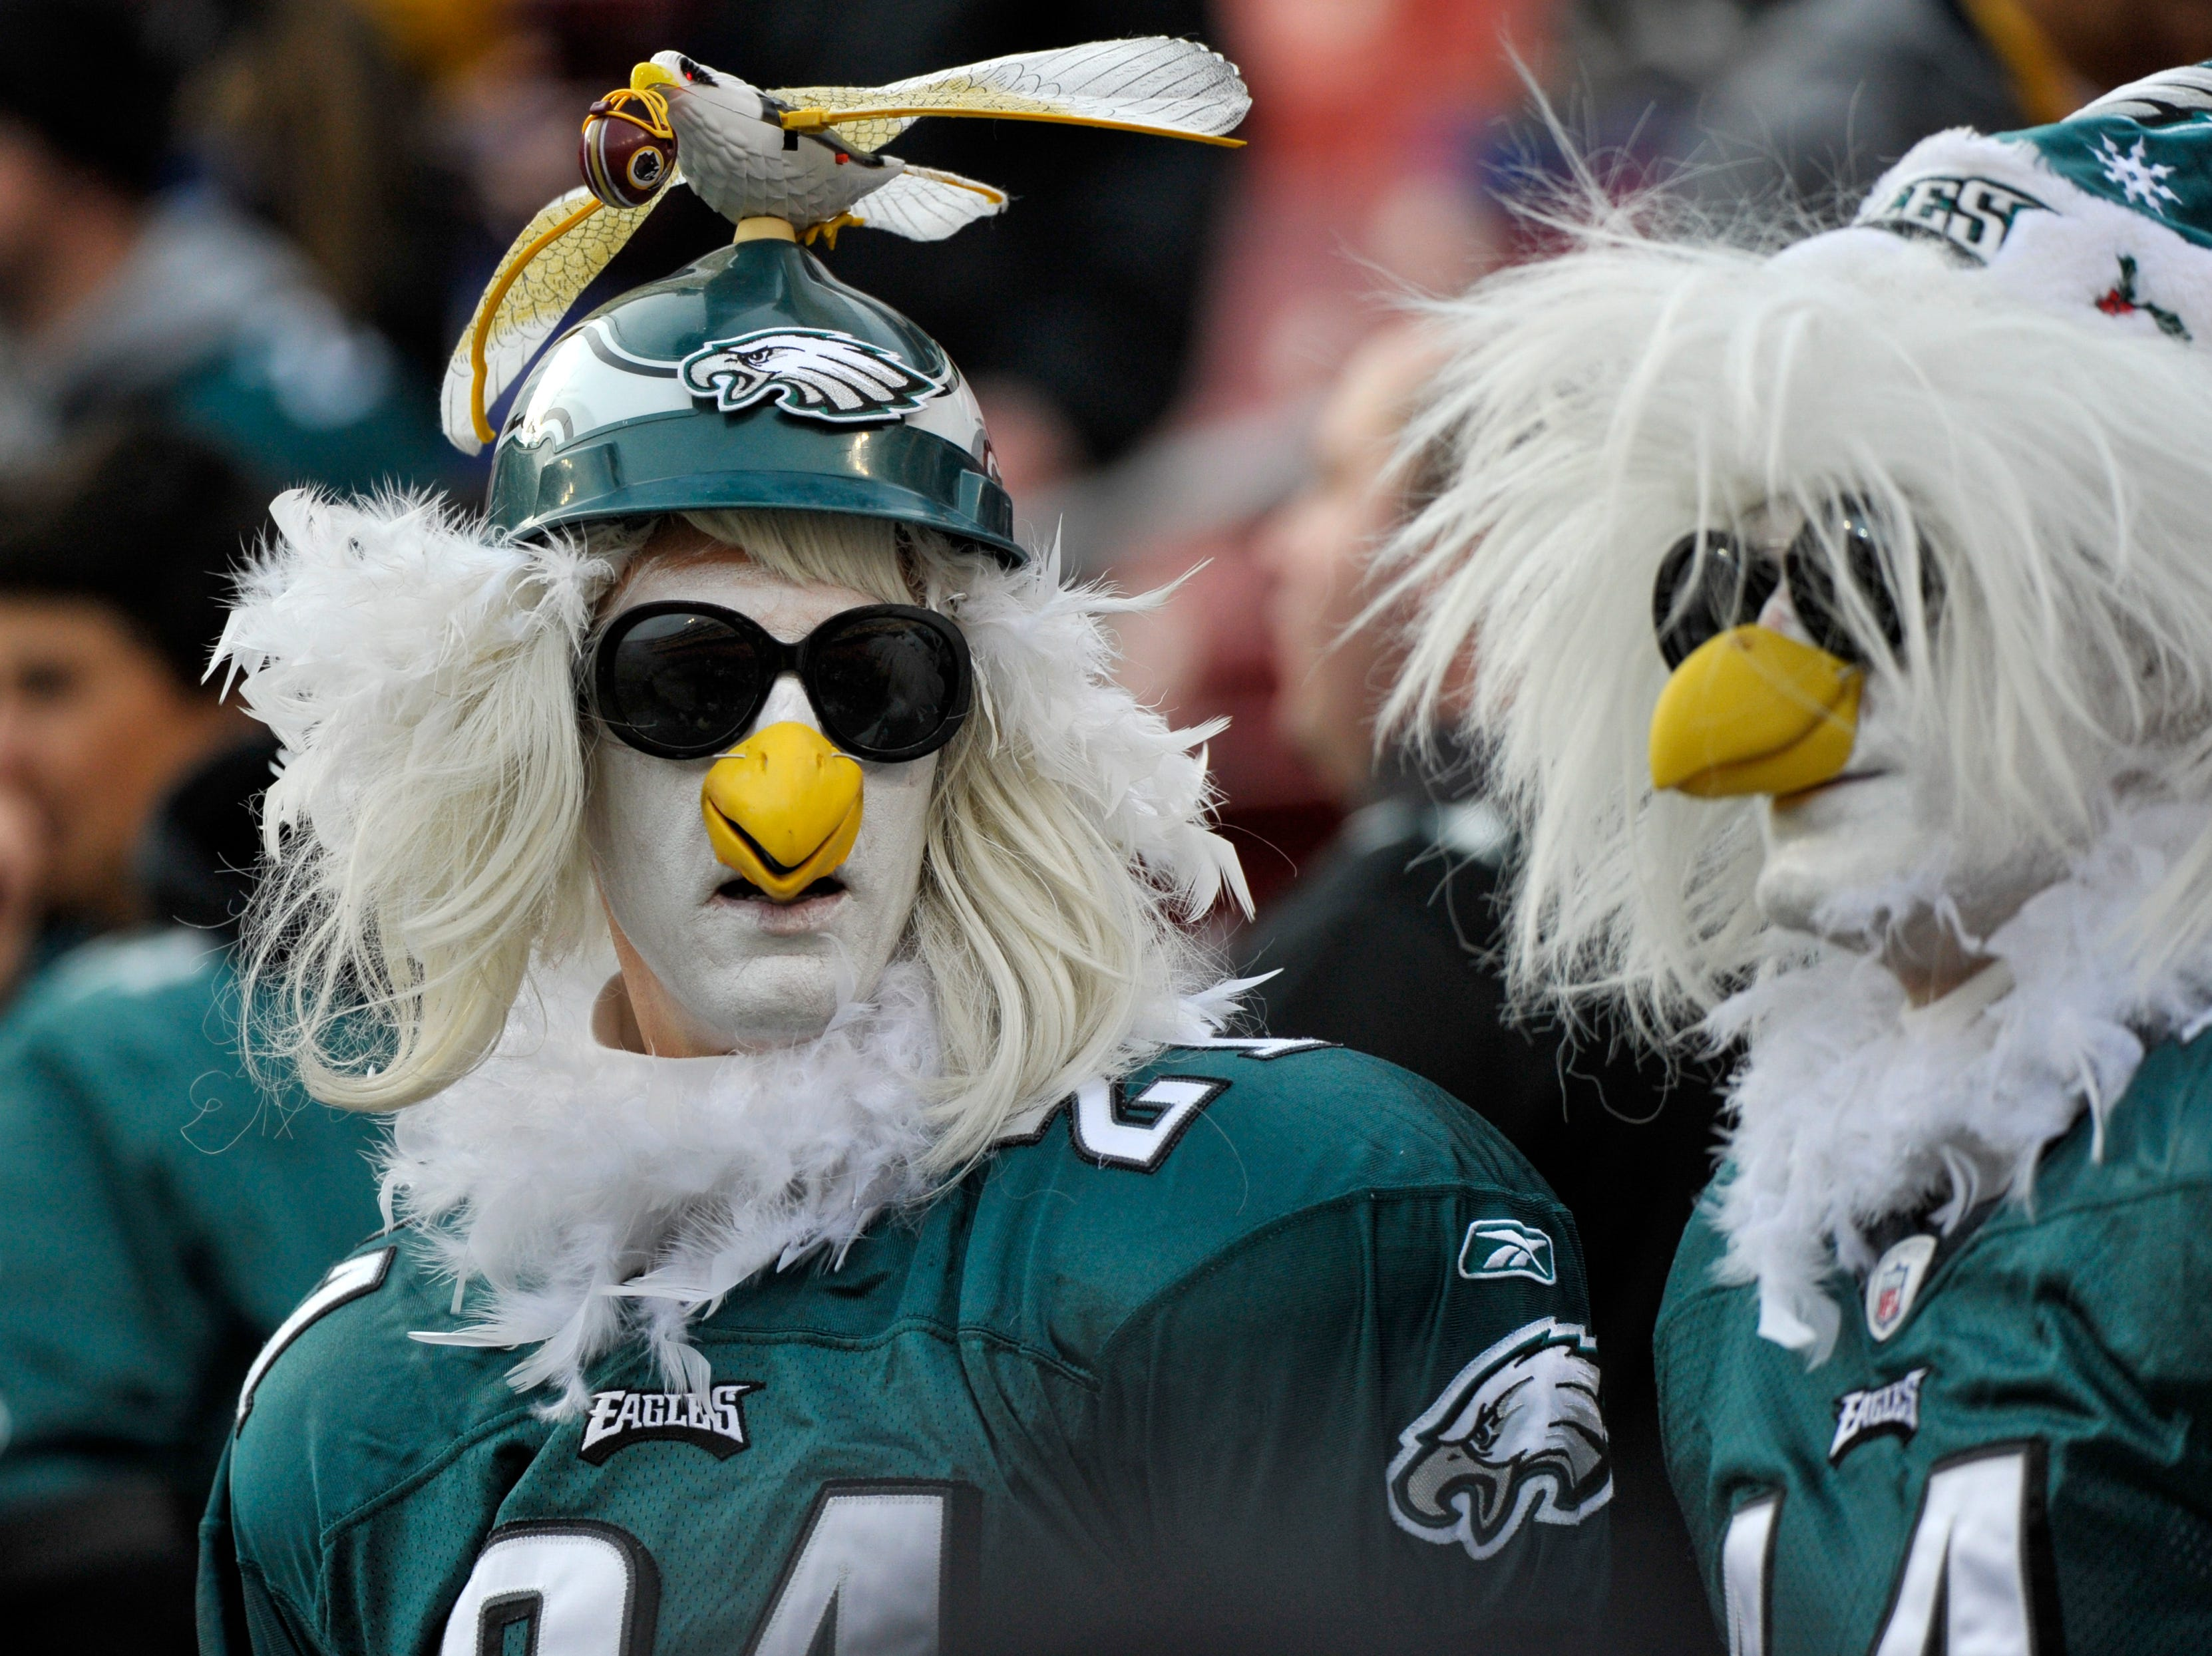 Philadelphia Eagles fans watch their team warm up before the NFL football game between the Washington Redskins and the Philadelphia Eagles, Sunday, Dec. 30, 2018 in Landover, Md. (AP Photo/Mark Tenally)